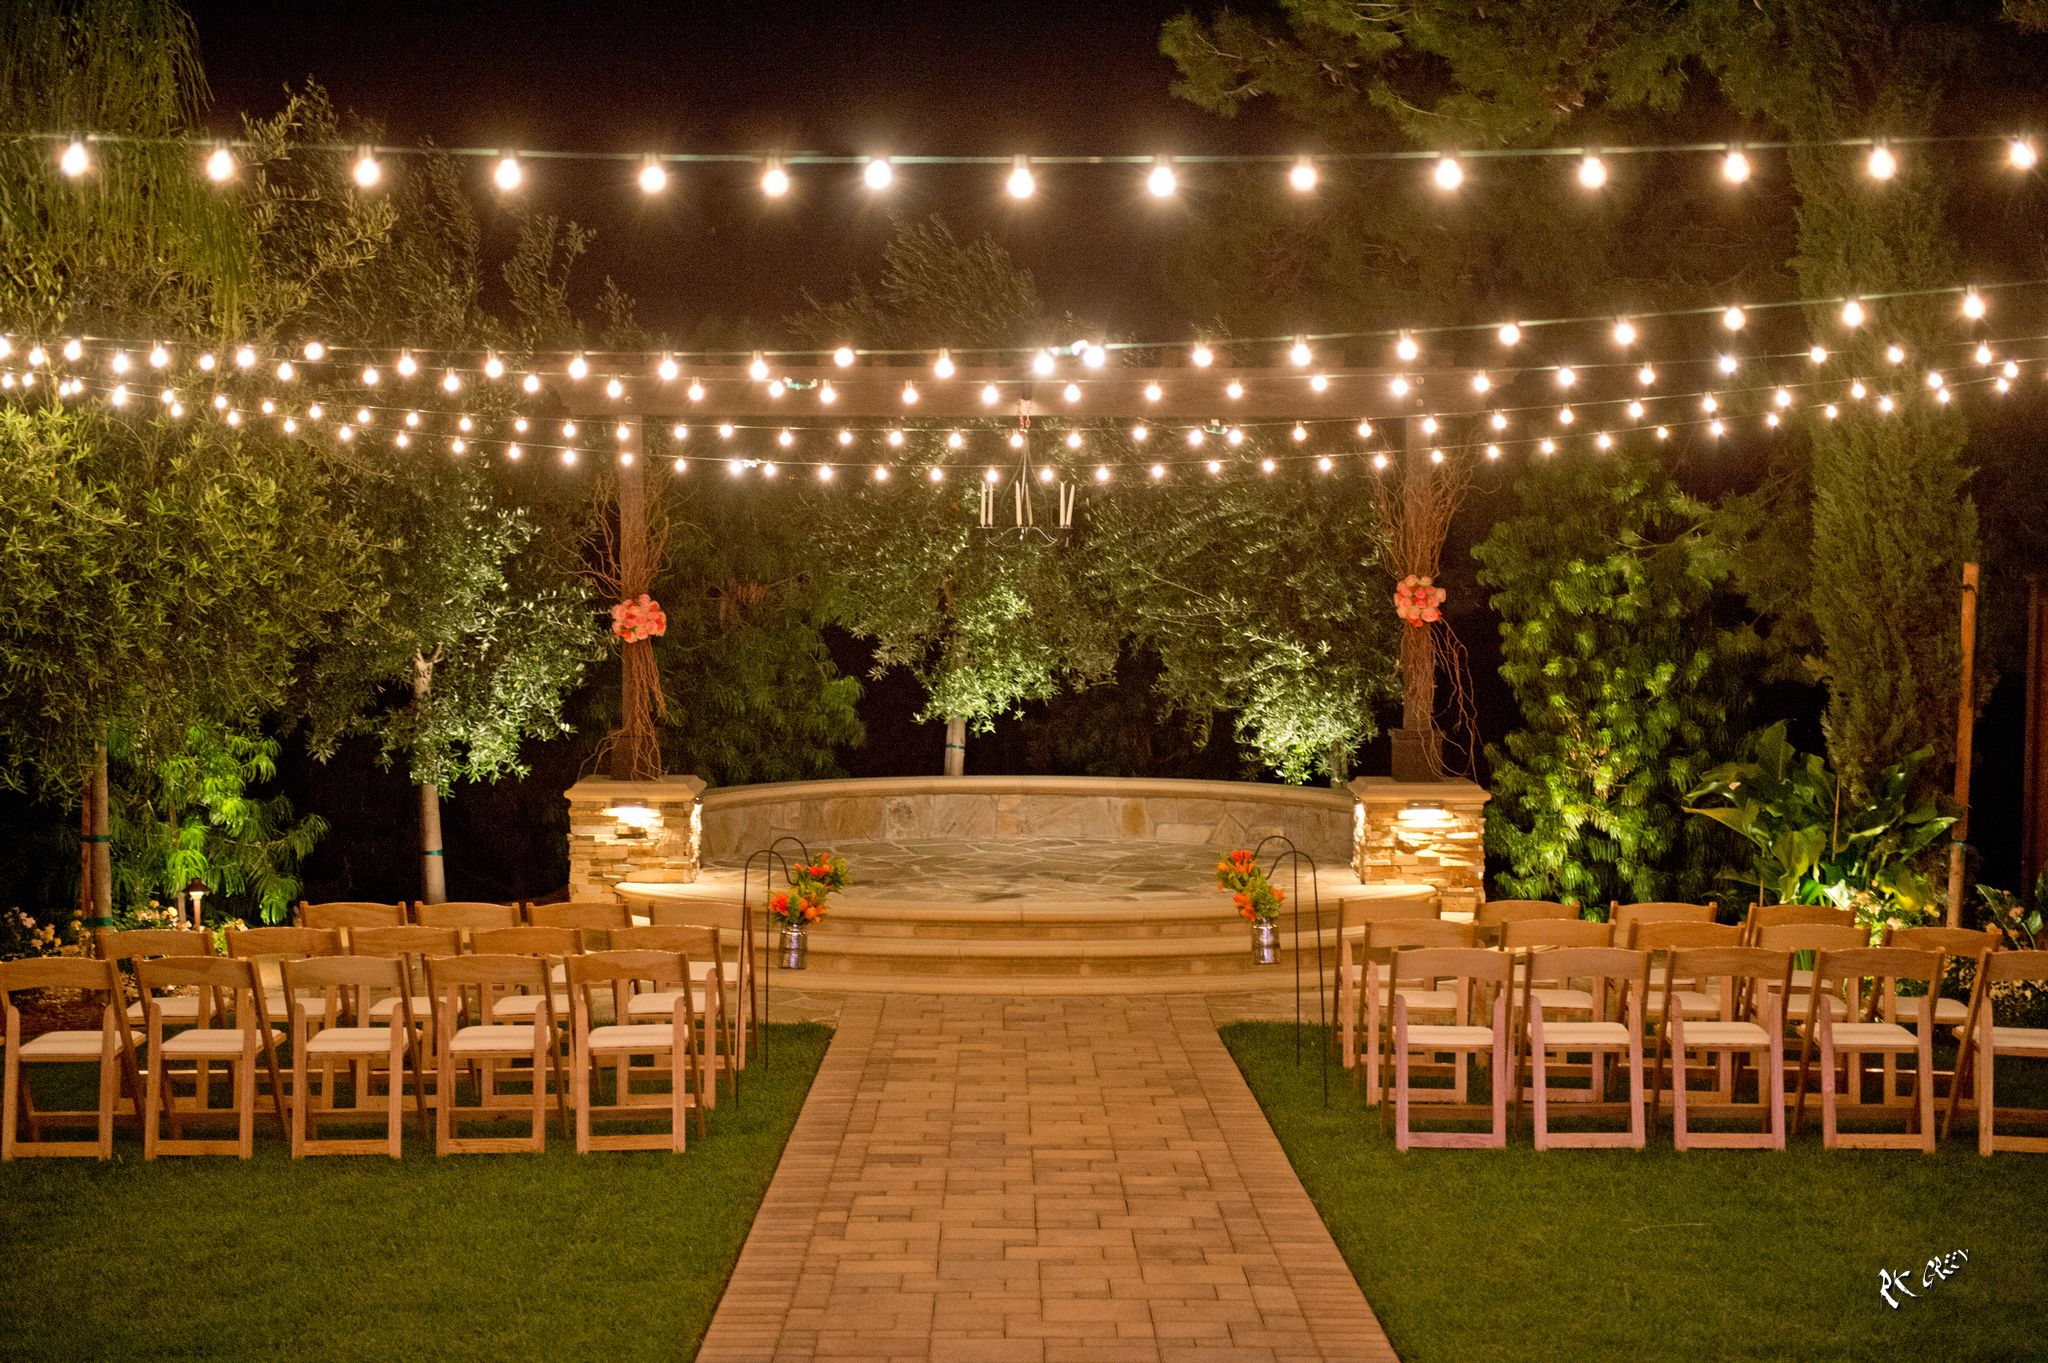 danza del sol winery ceremony lawn tvwp event marketlighting